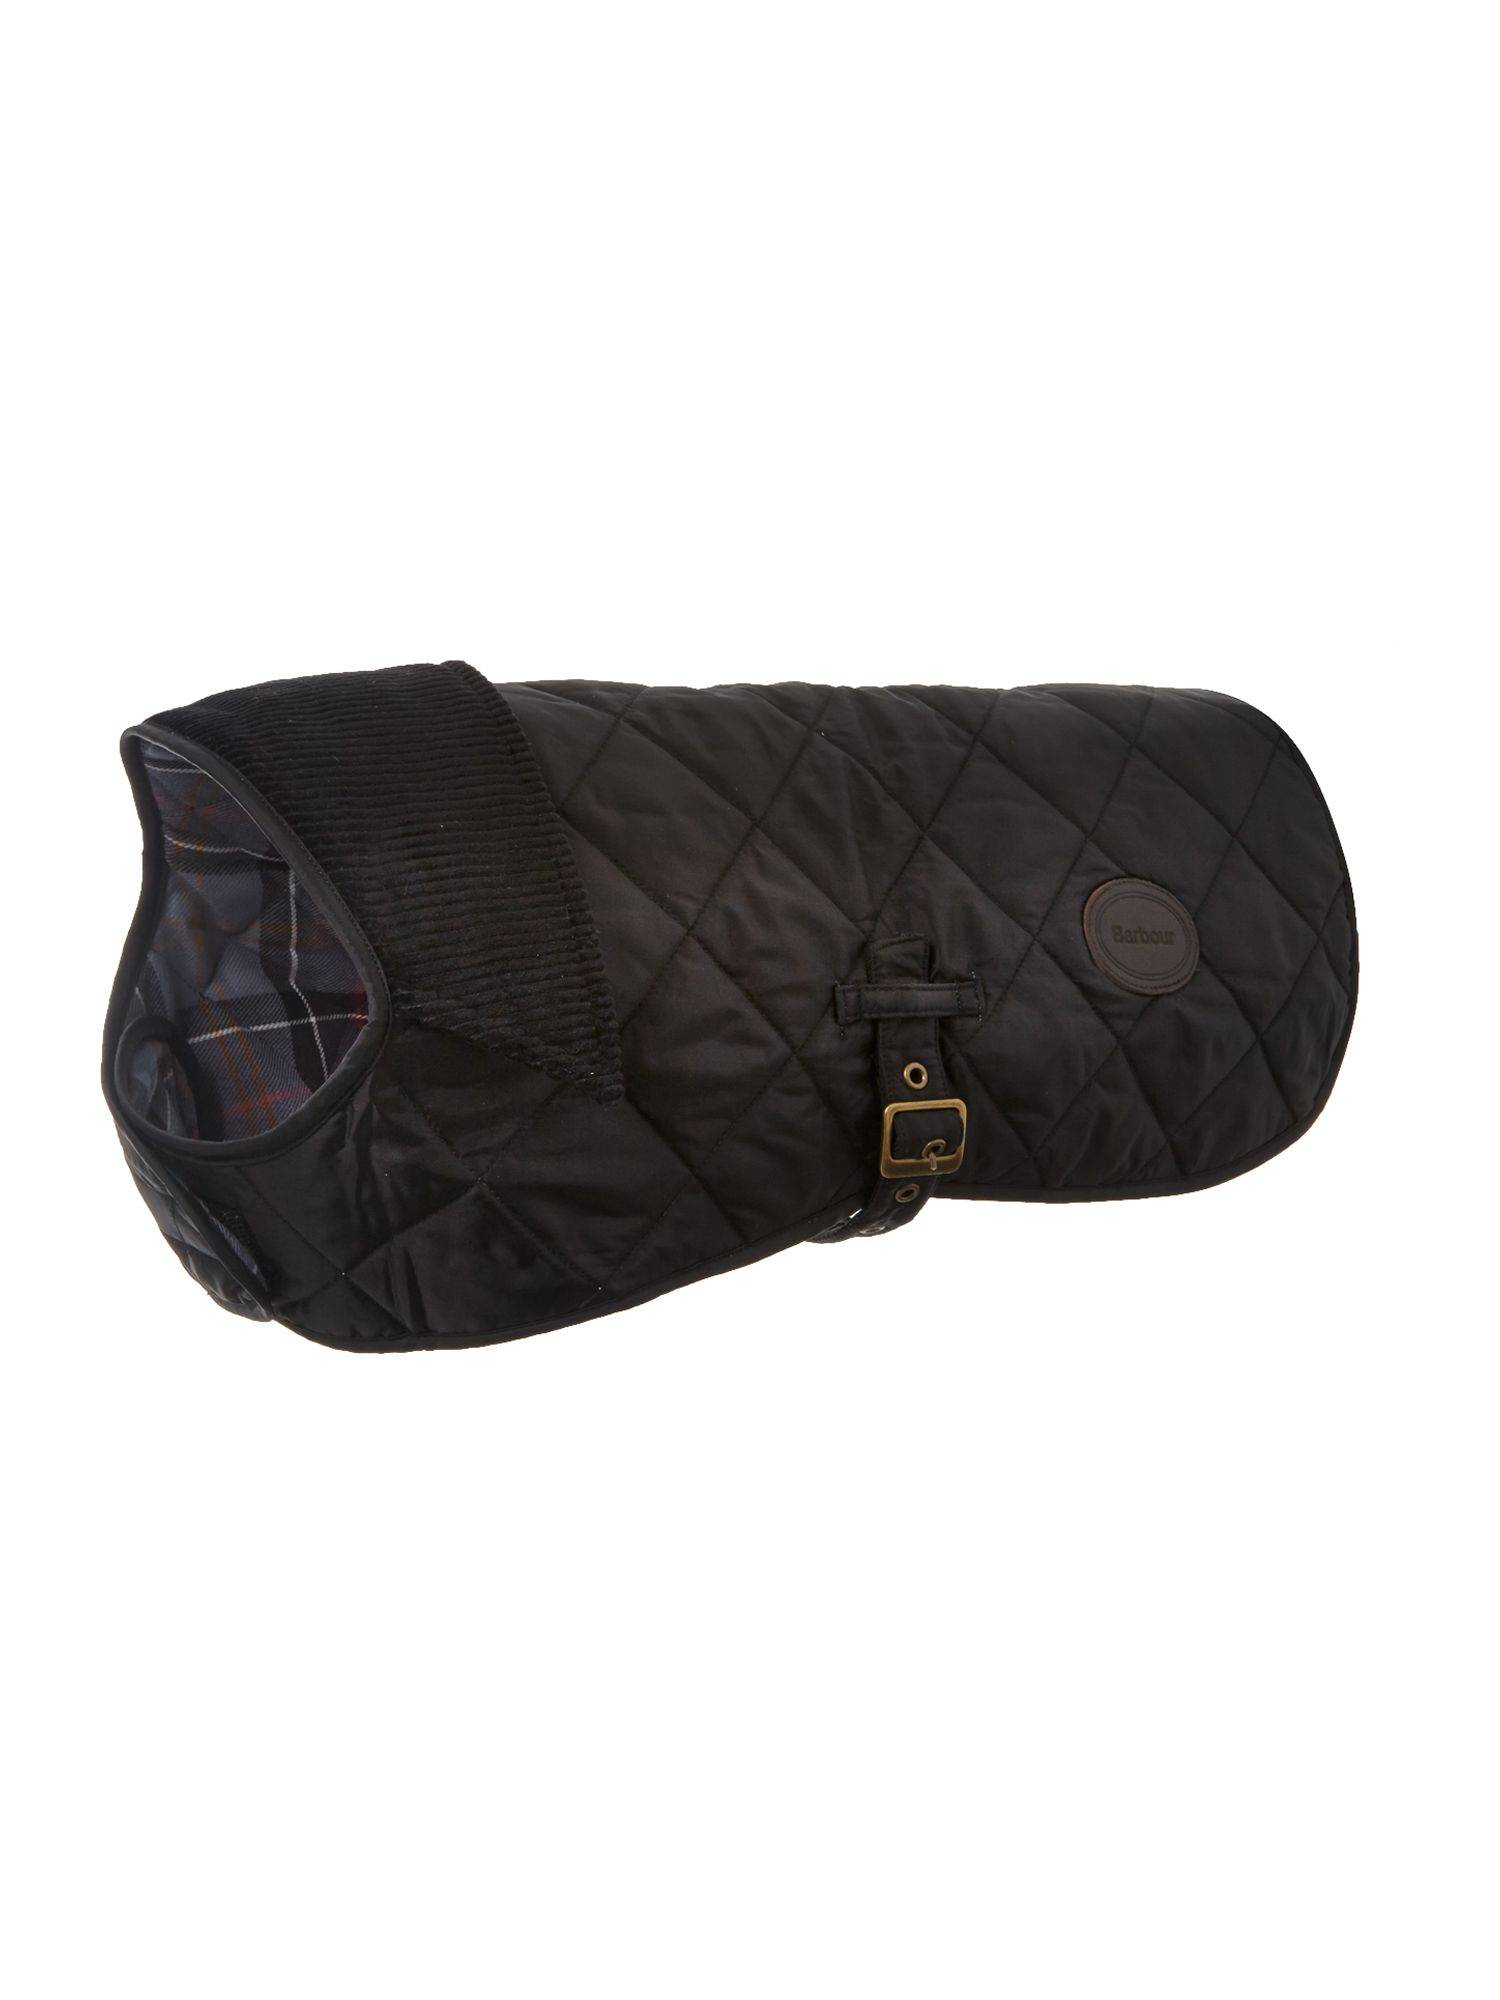 Barbour Quilted dog coat (Large)